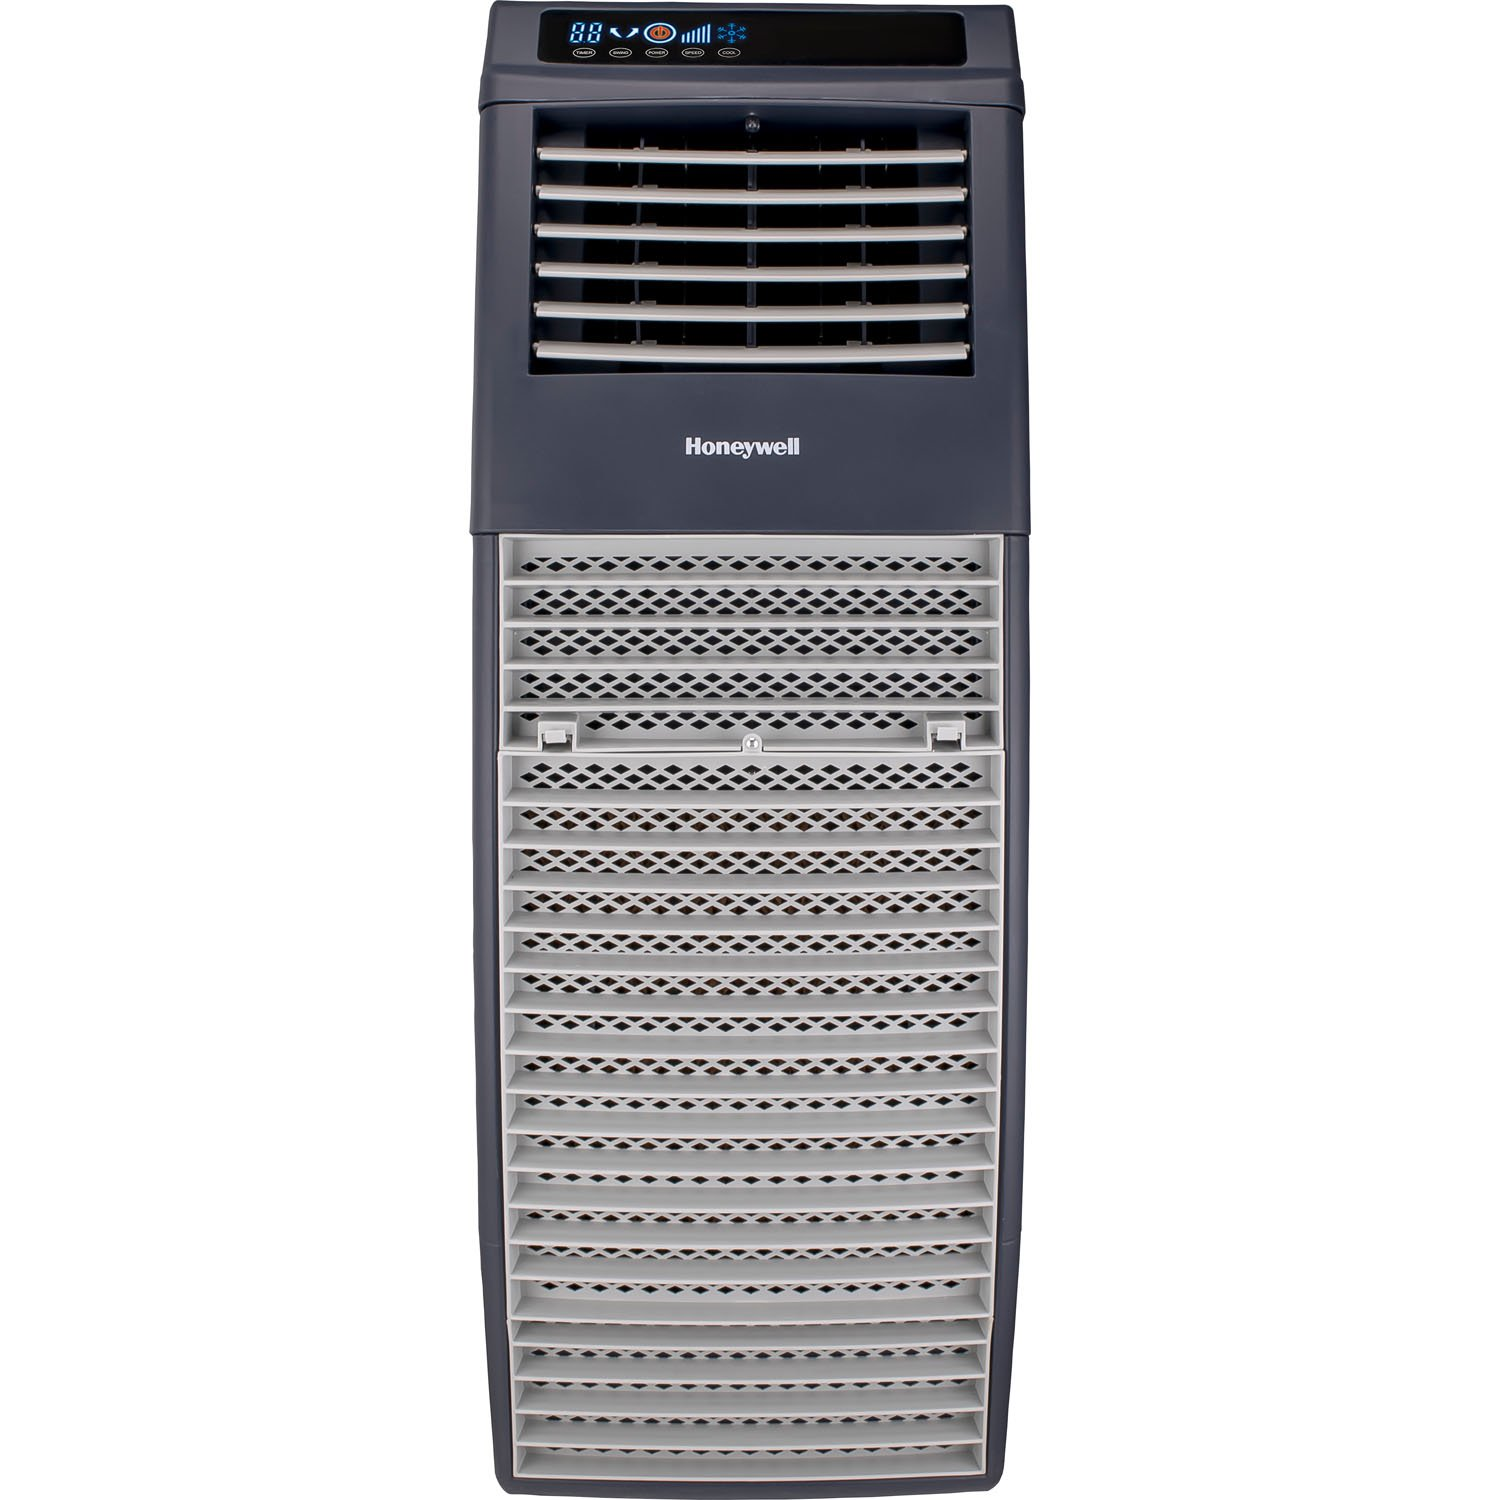 Honeywell Outdoor Portable Evaporative Cooler with Remote Control